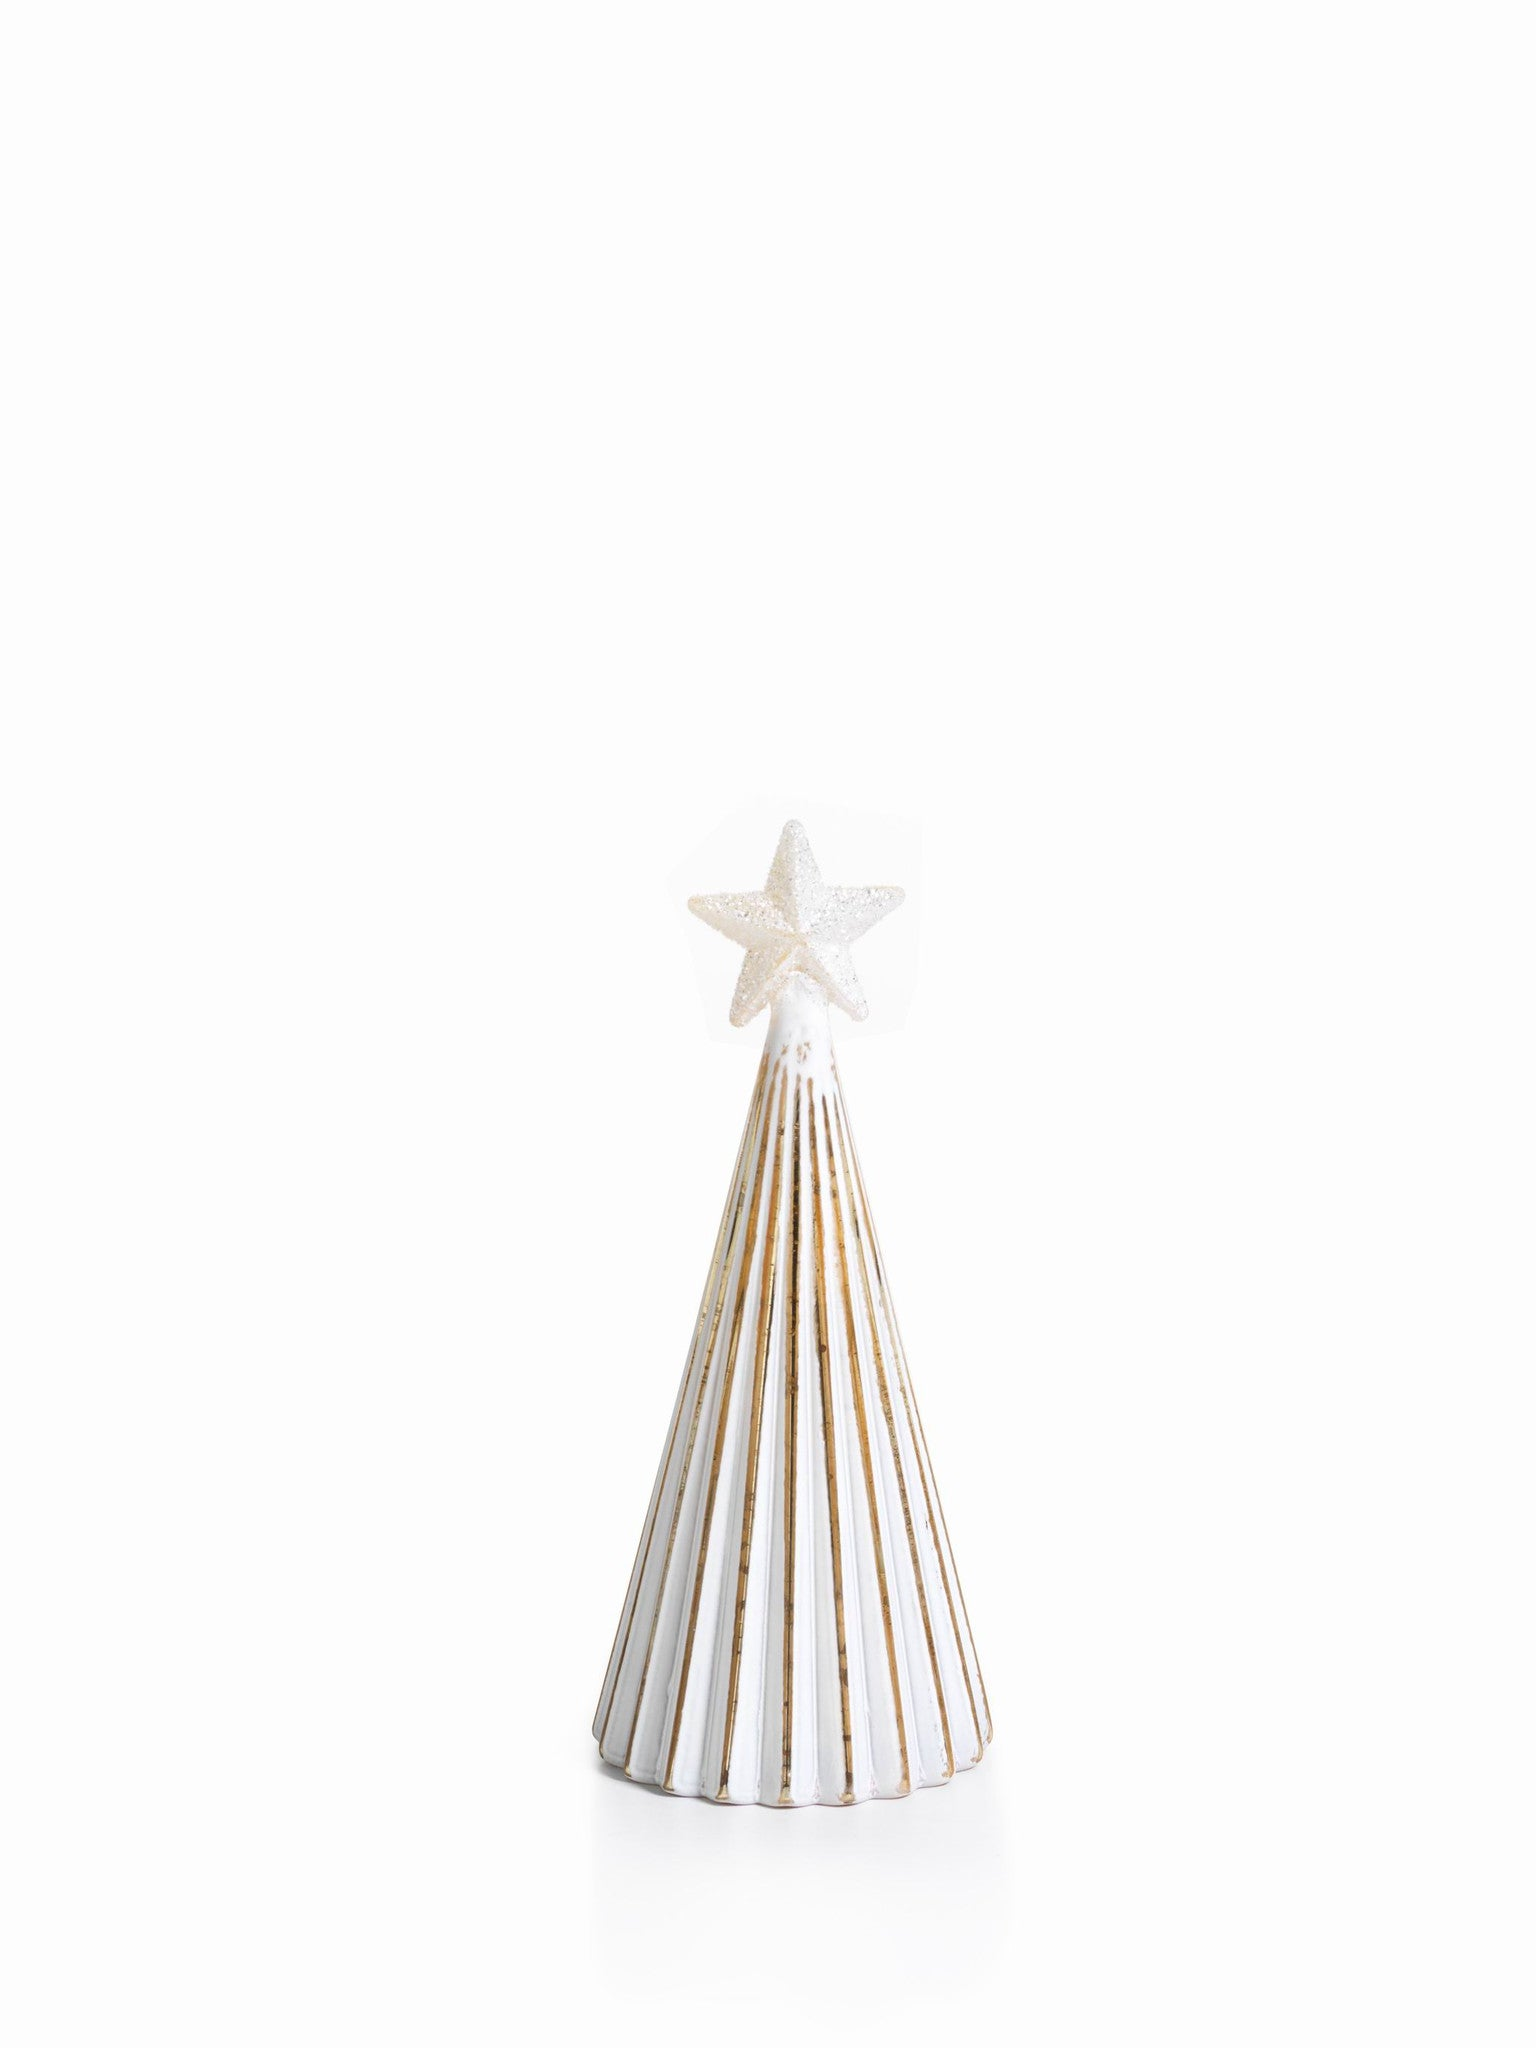 LED Glass Decorative Tree - Gold - Set of 6 - Small / Straight Line - CARLYLE AVENUE - 11